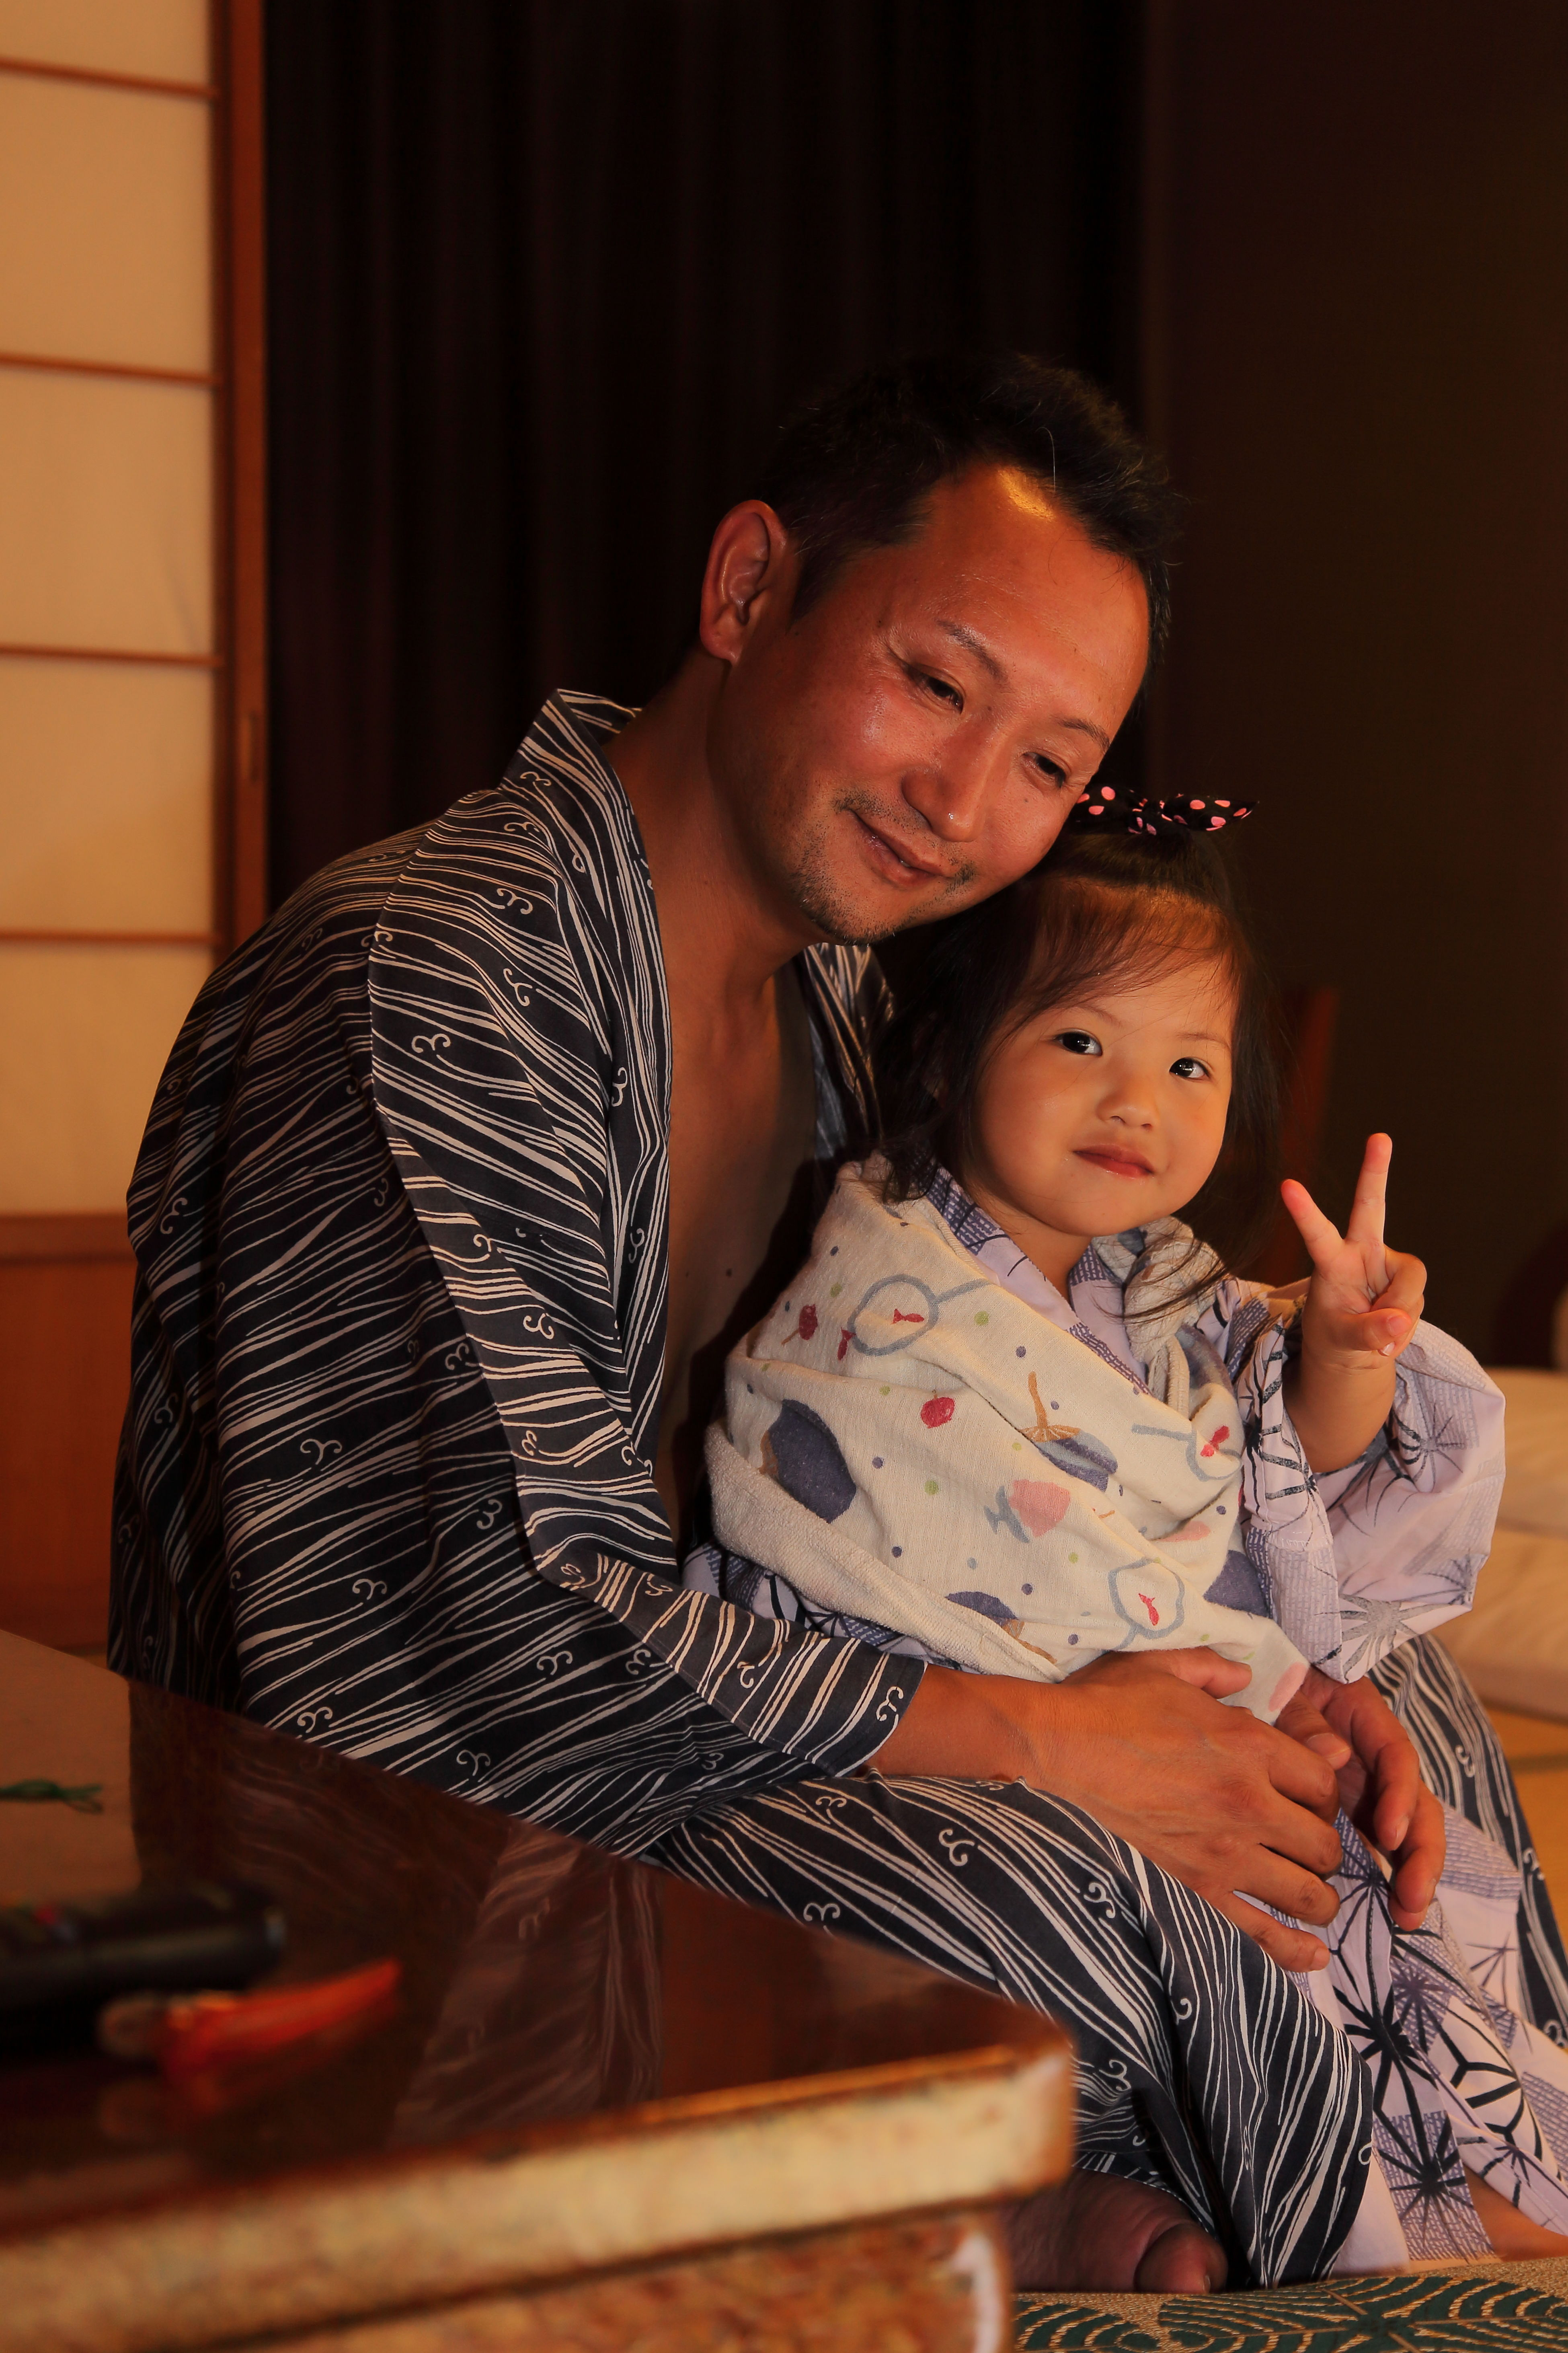 Father&Daughter Father Daughter Love Hot-spring Hotel Hot-spring 福井県 旅 Travel Happy Happy Time 父と娘 旅 幸せな時間 子供 Kids Japanese  女の子 Photography Pic Photo 写真 Girl 日本人 Child